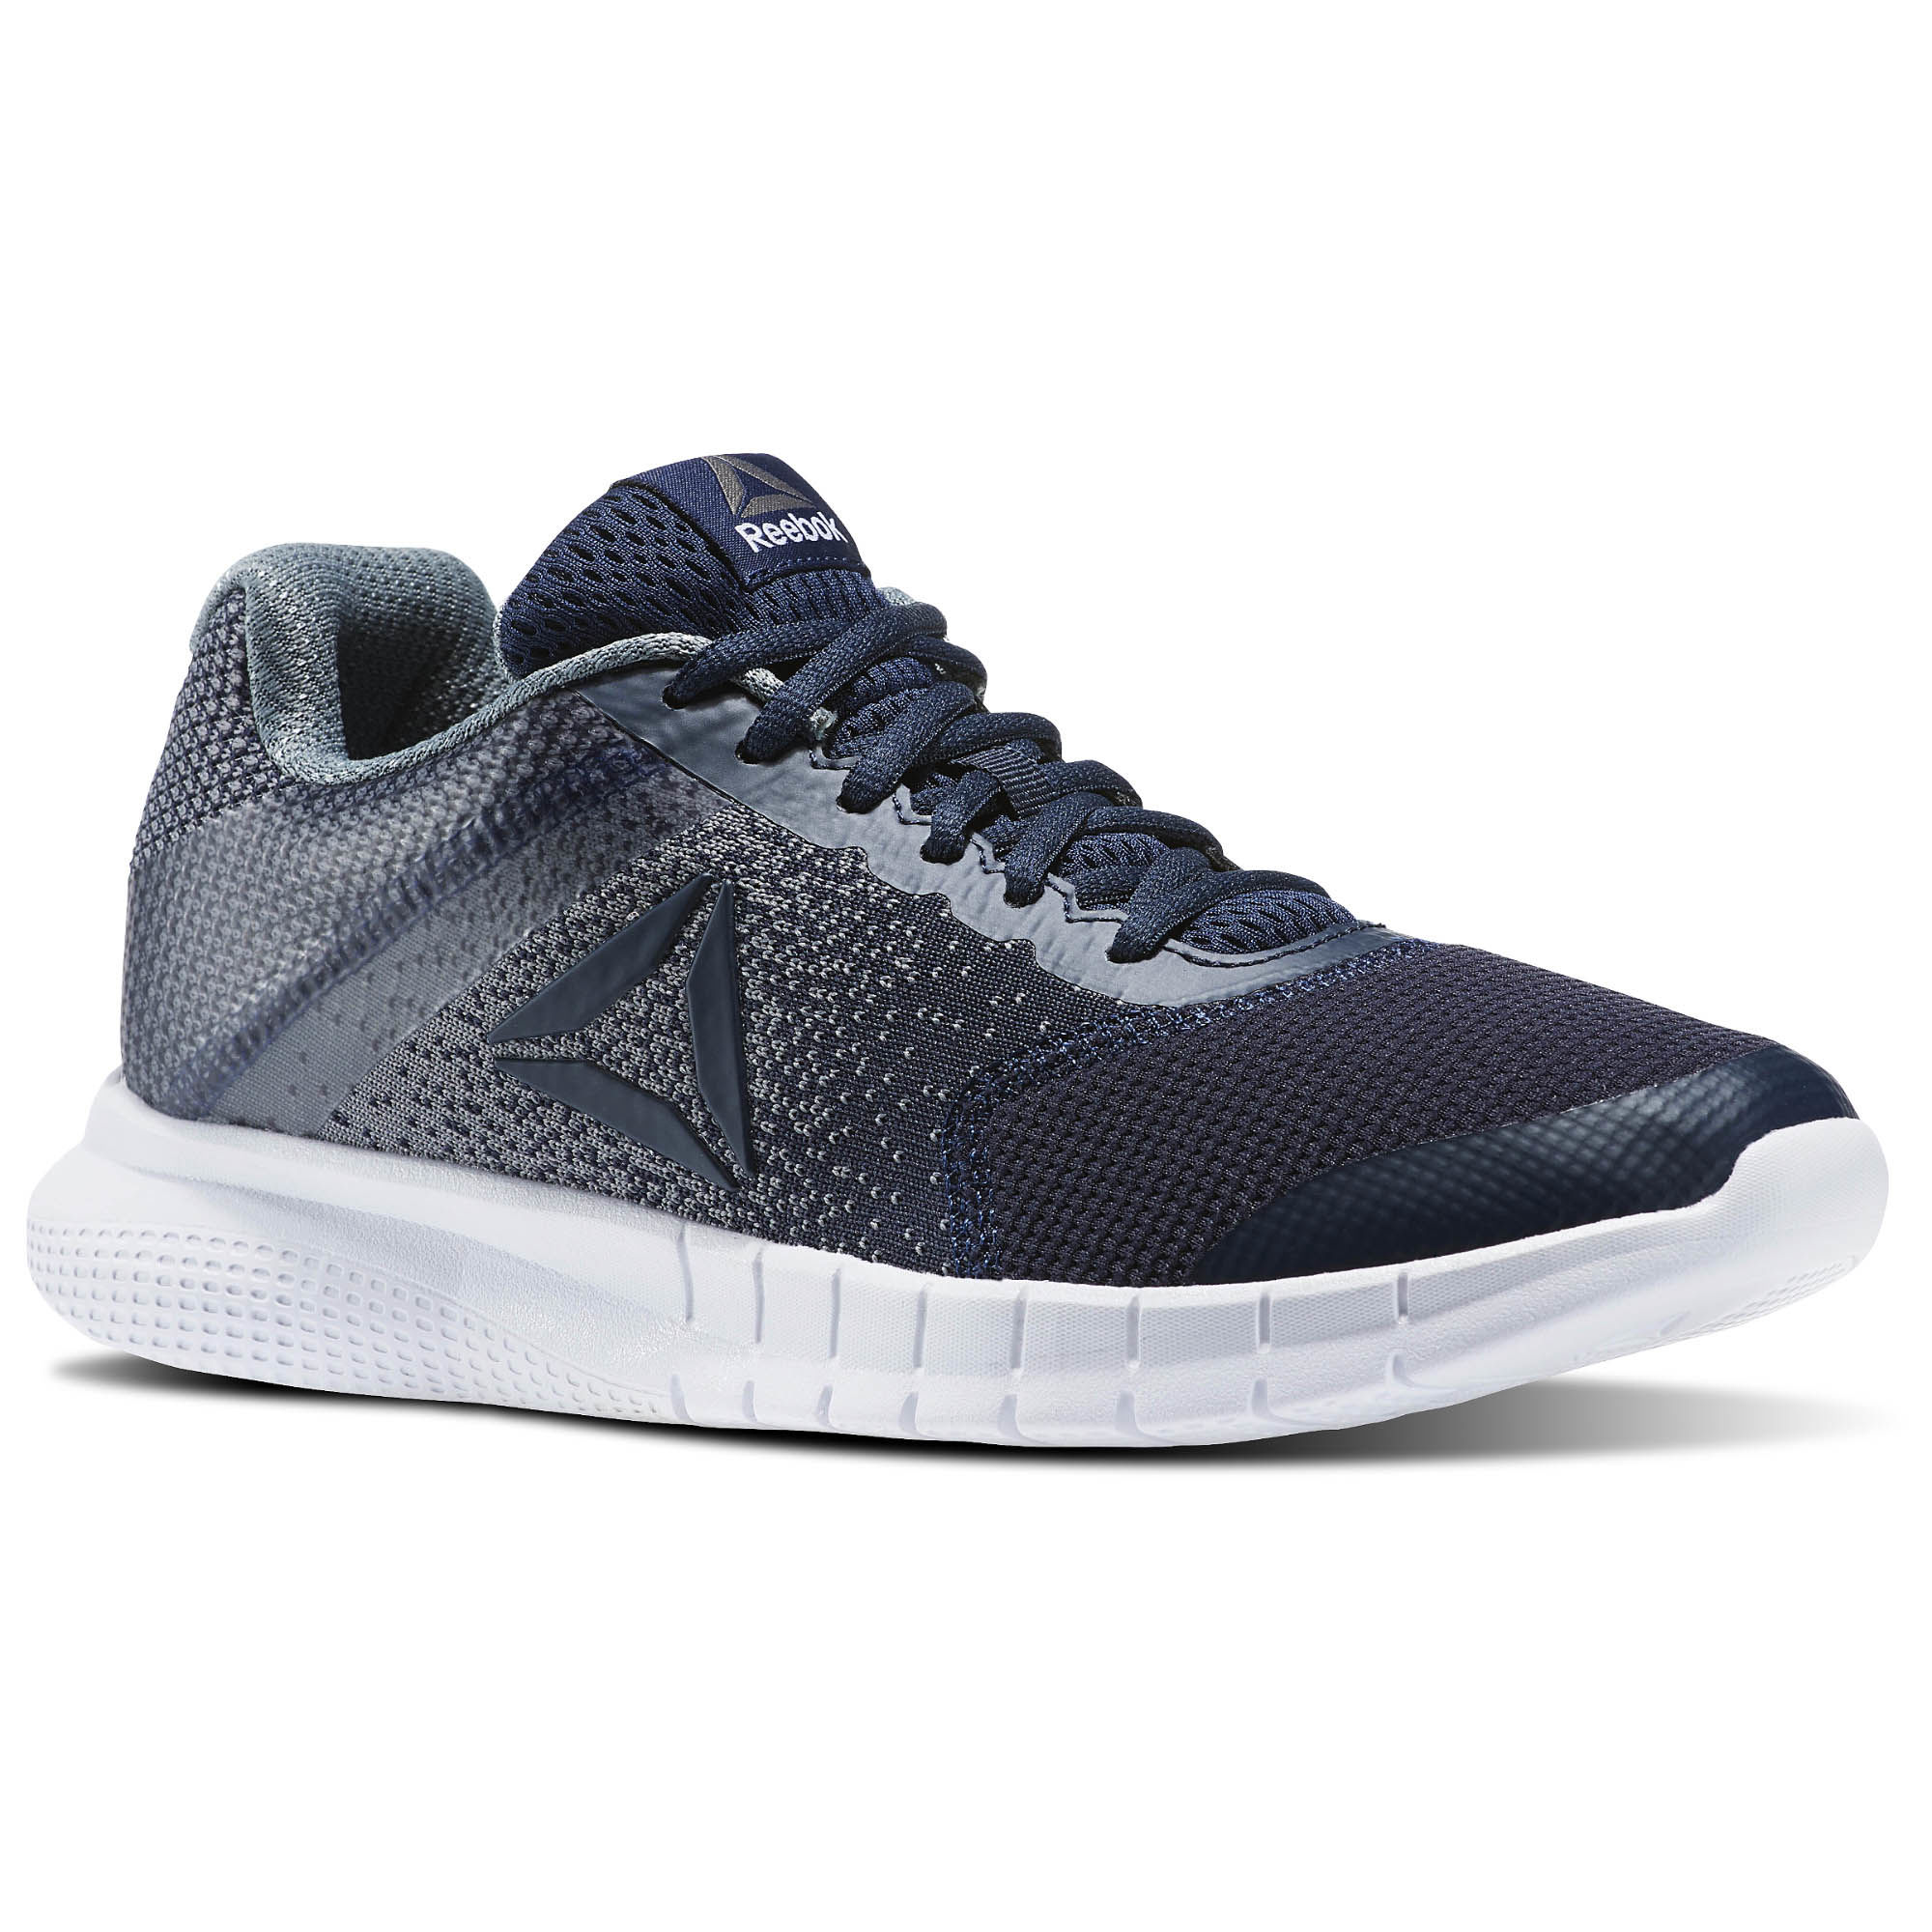 Chaussure running homme promo